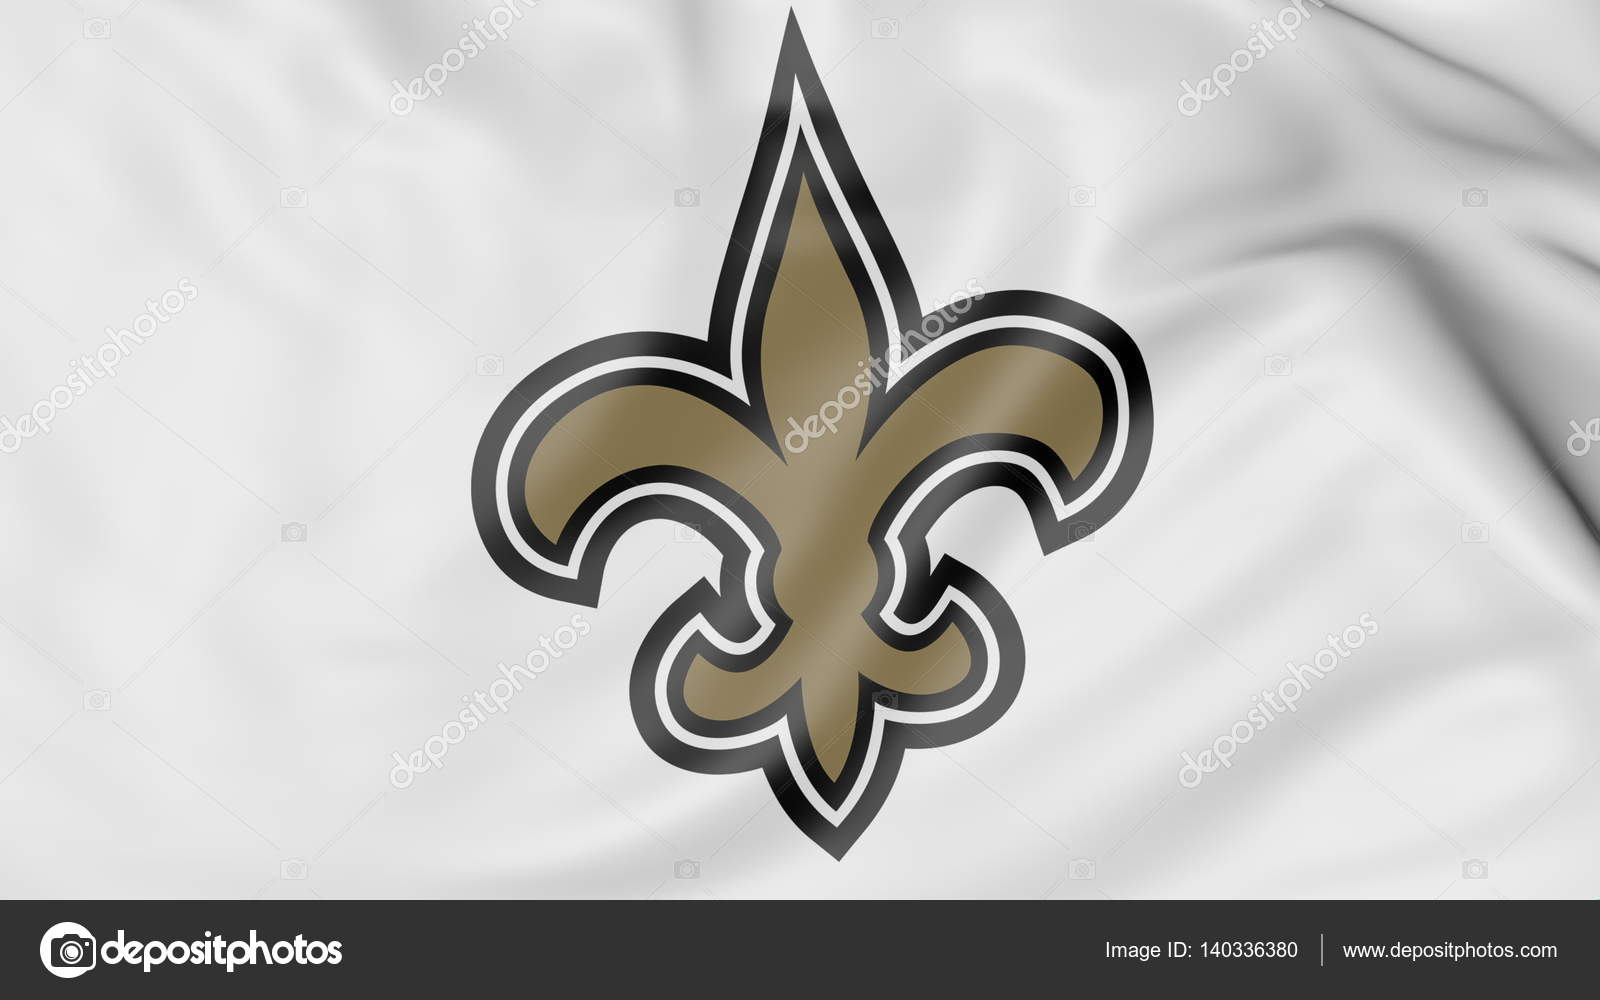 Close Up Of Waving Flag With New Orleans Saints Nfl American